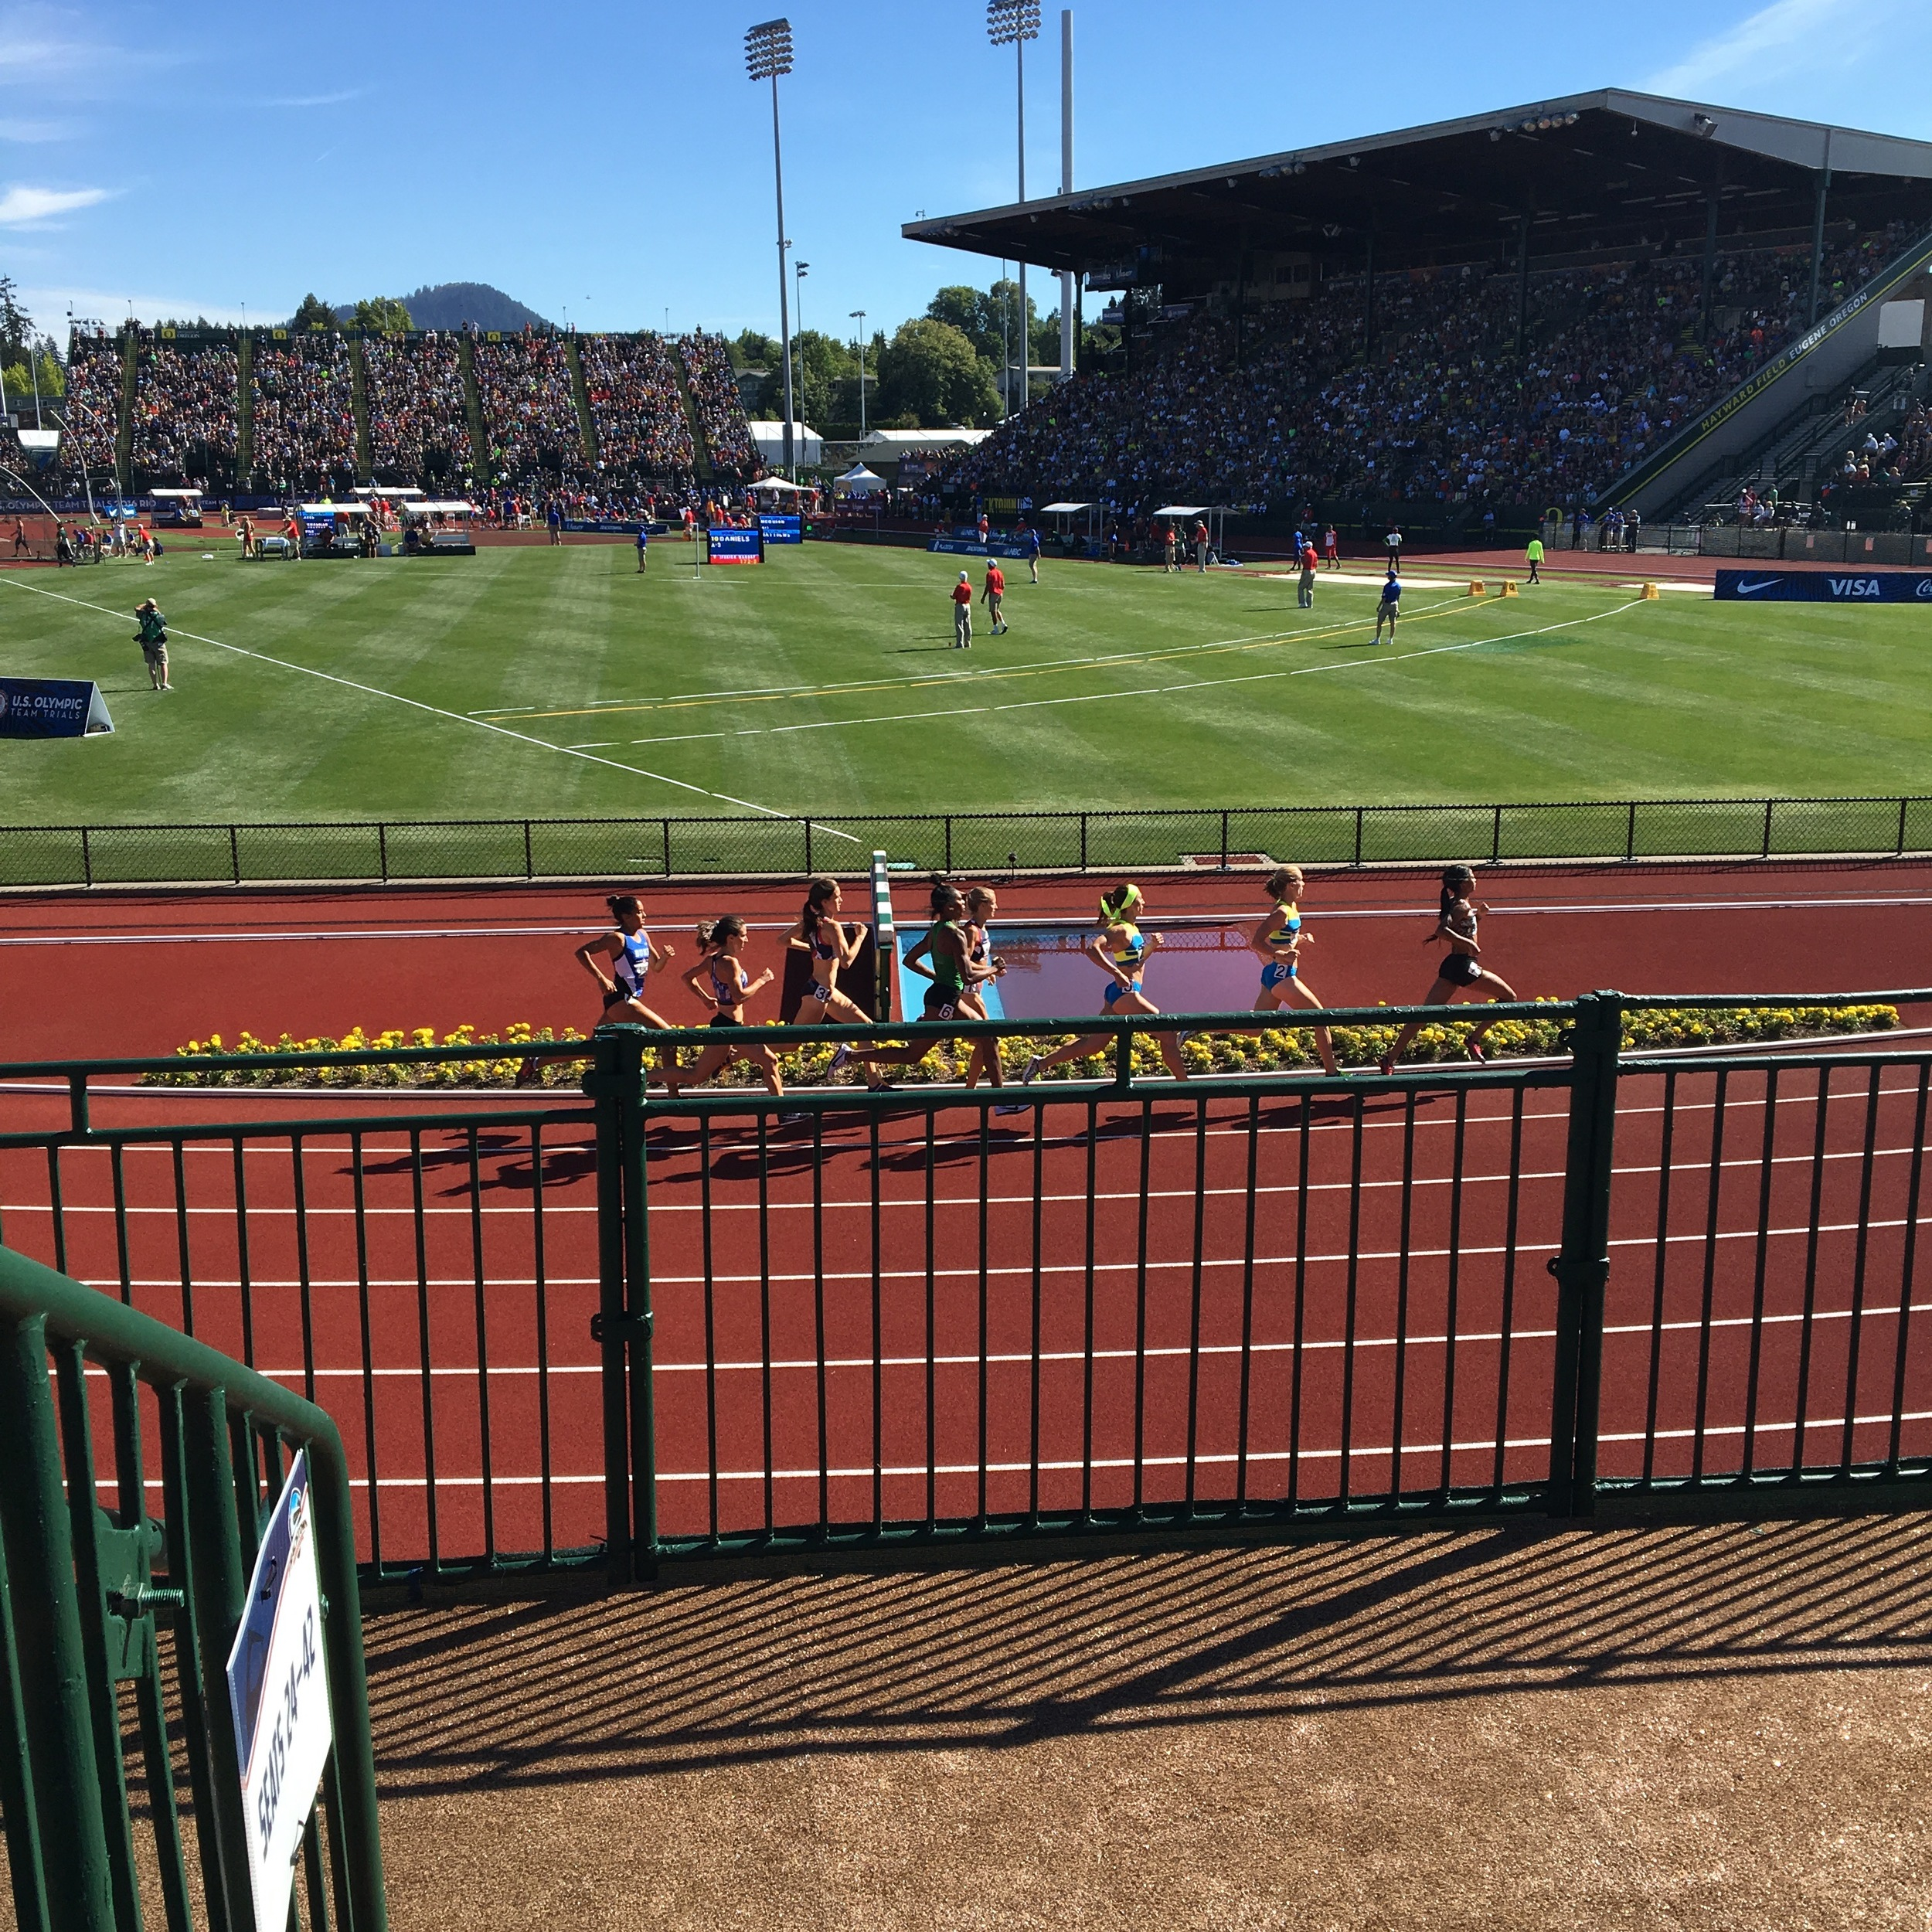 Semifinal round of the women's 800m